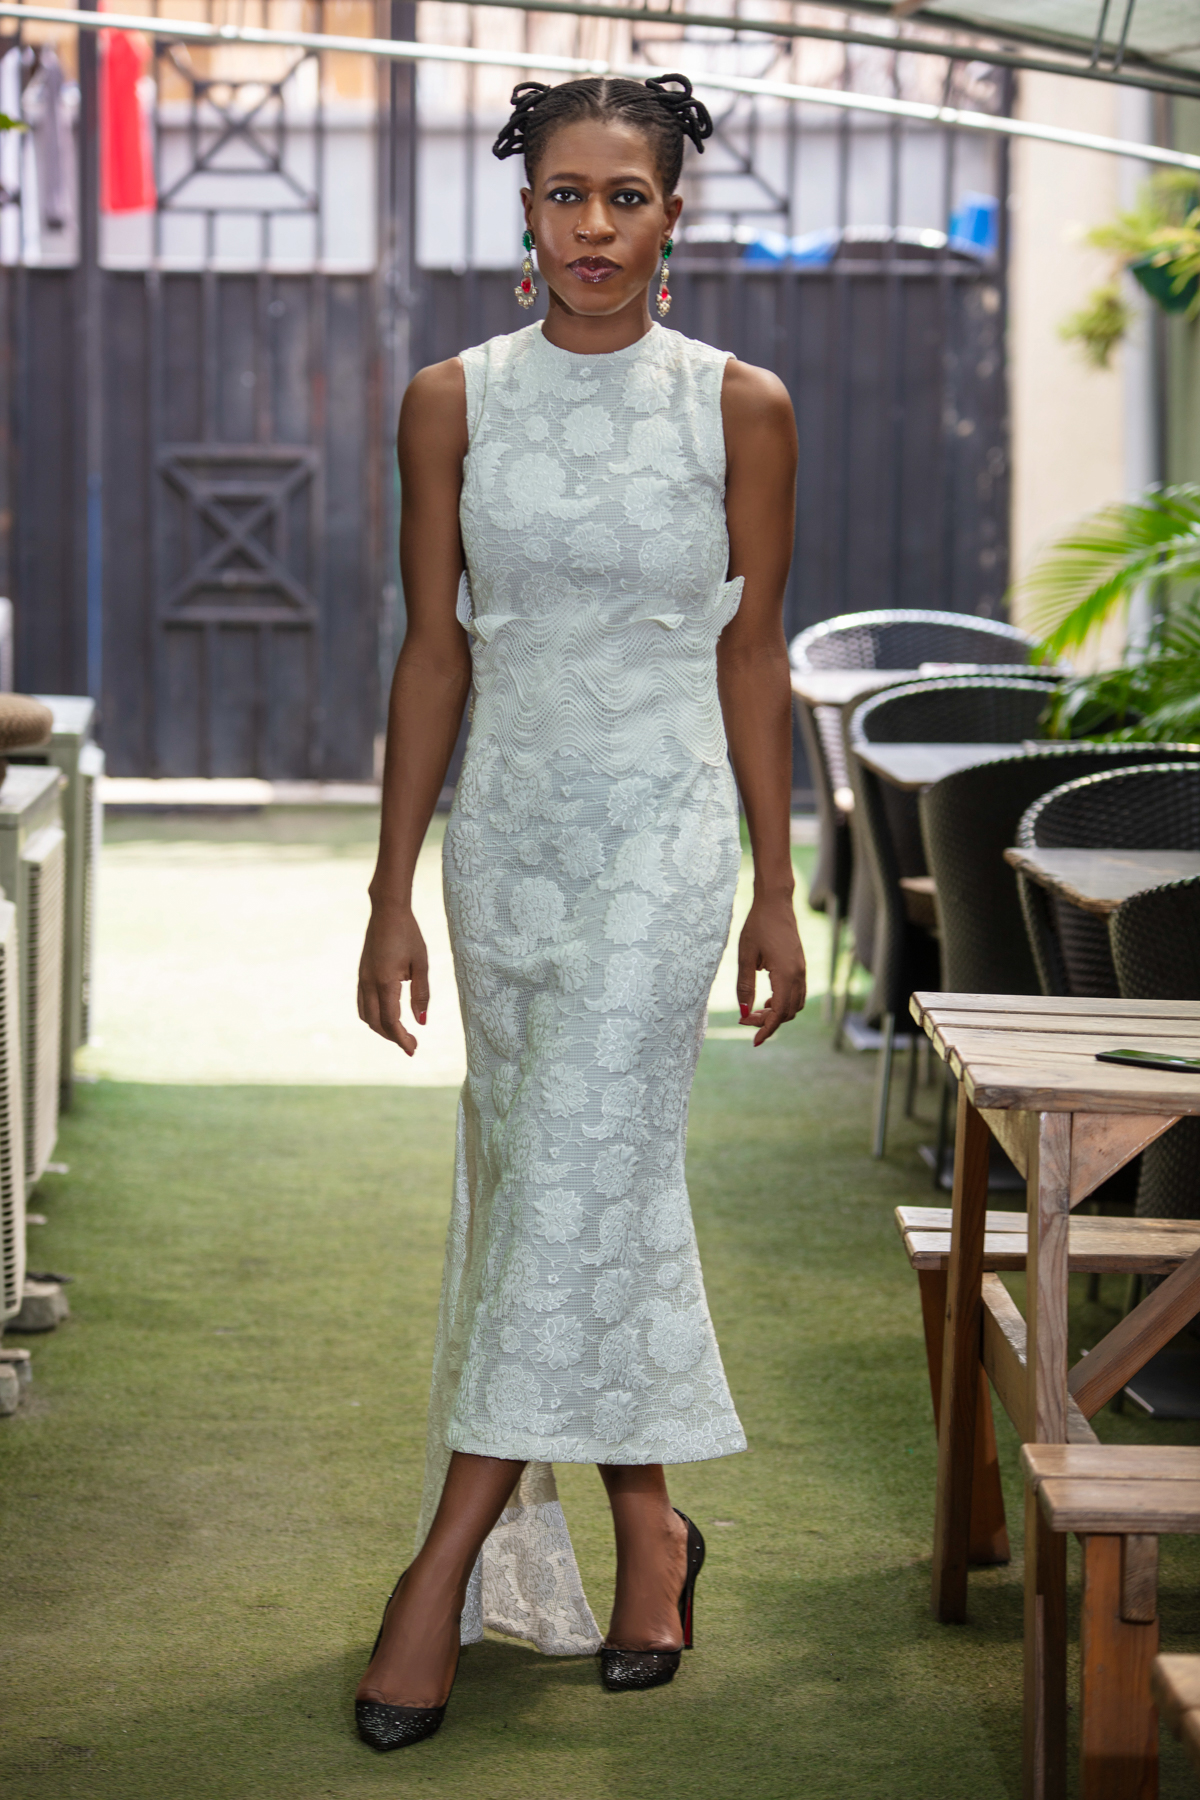 Are you a Minimal, Classic or Stylish Bride?